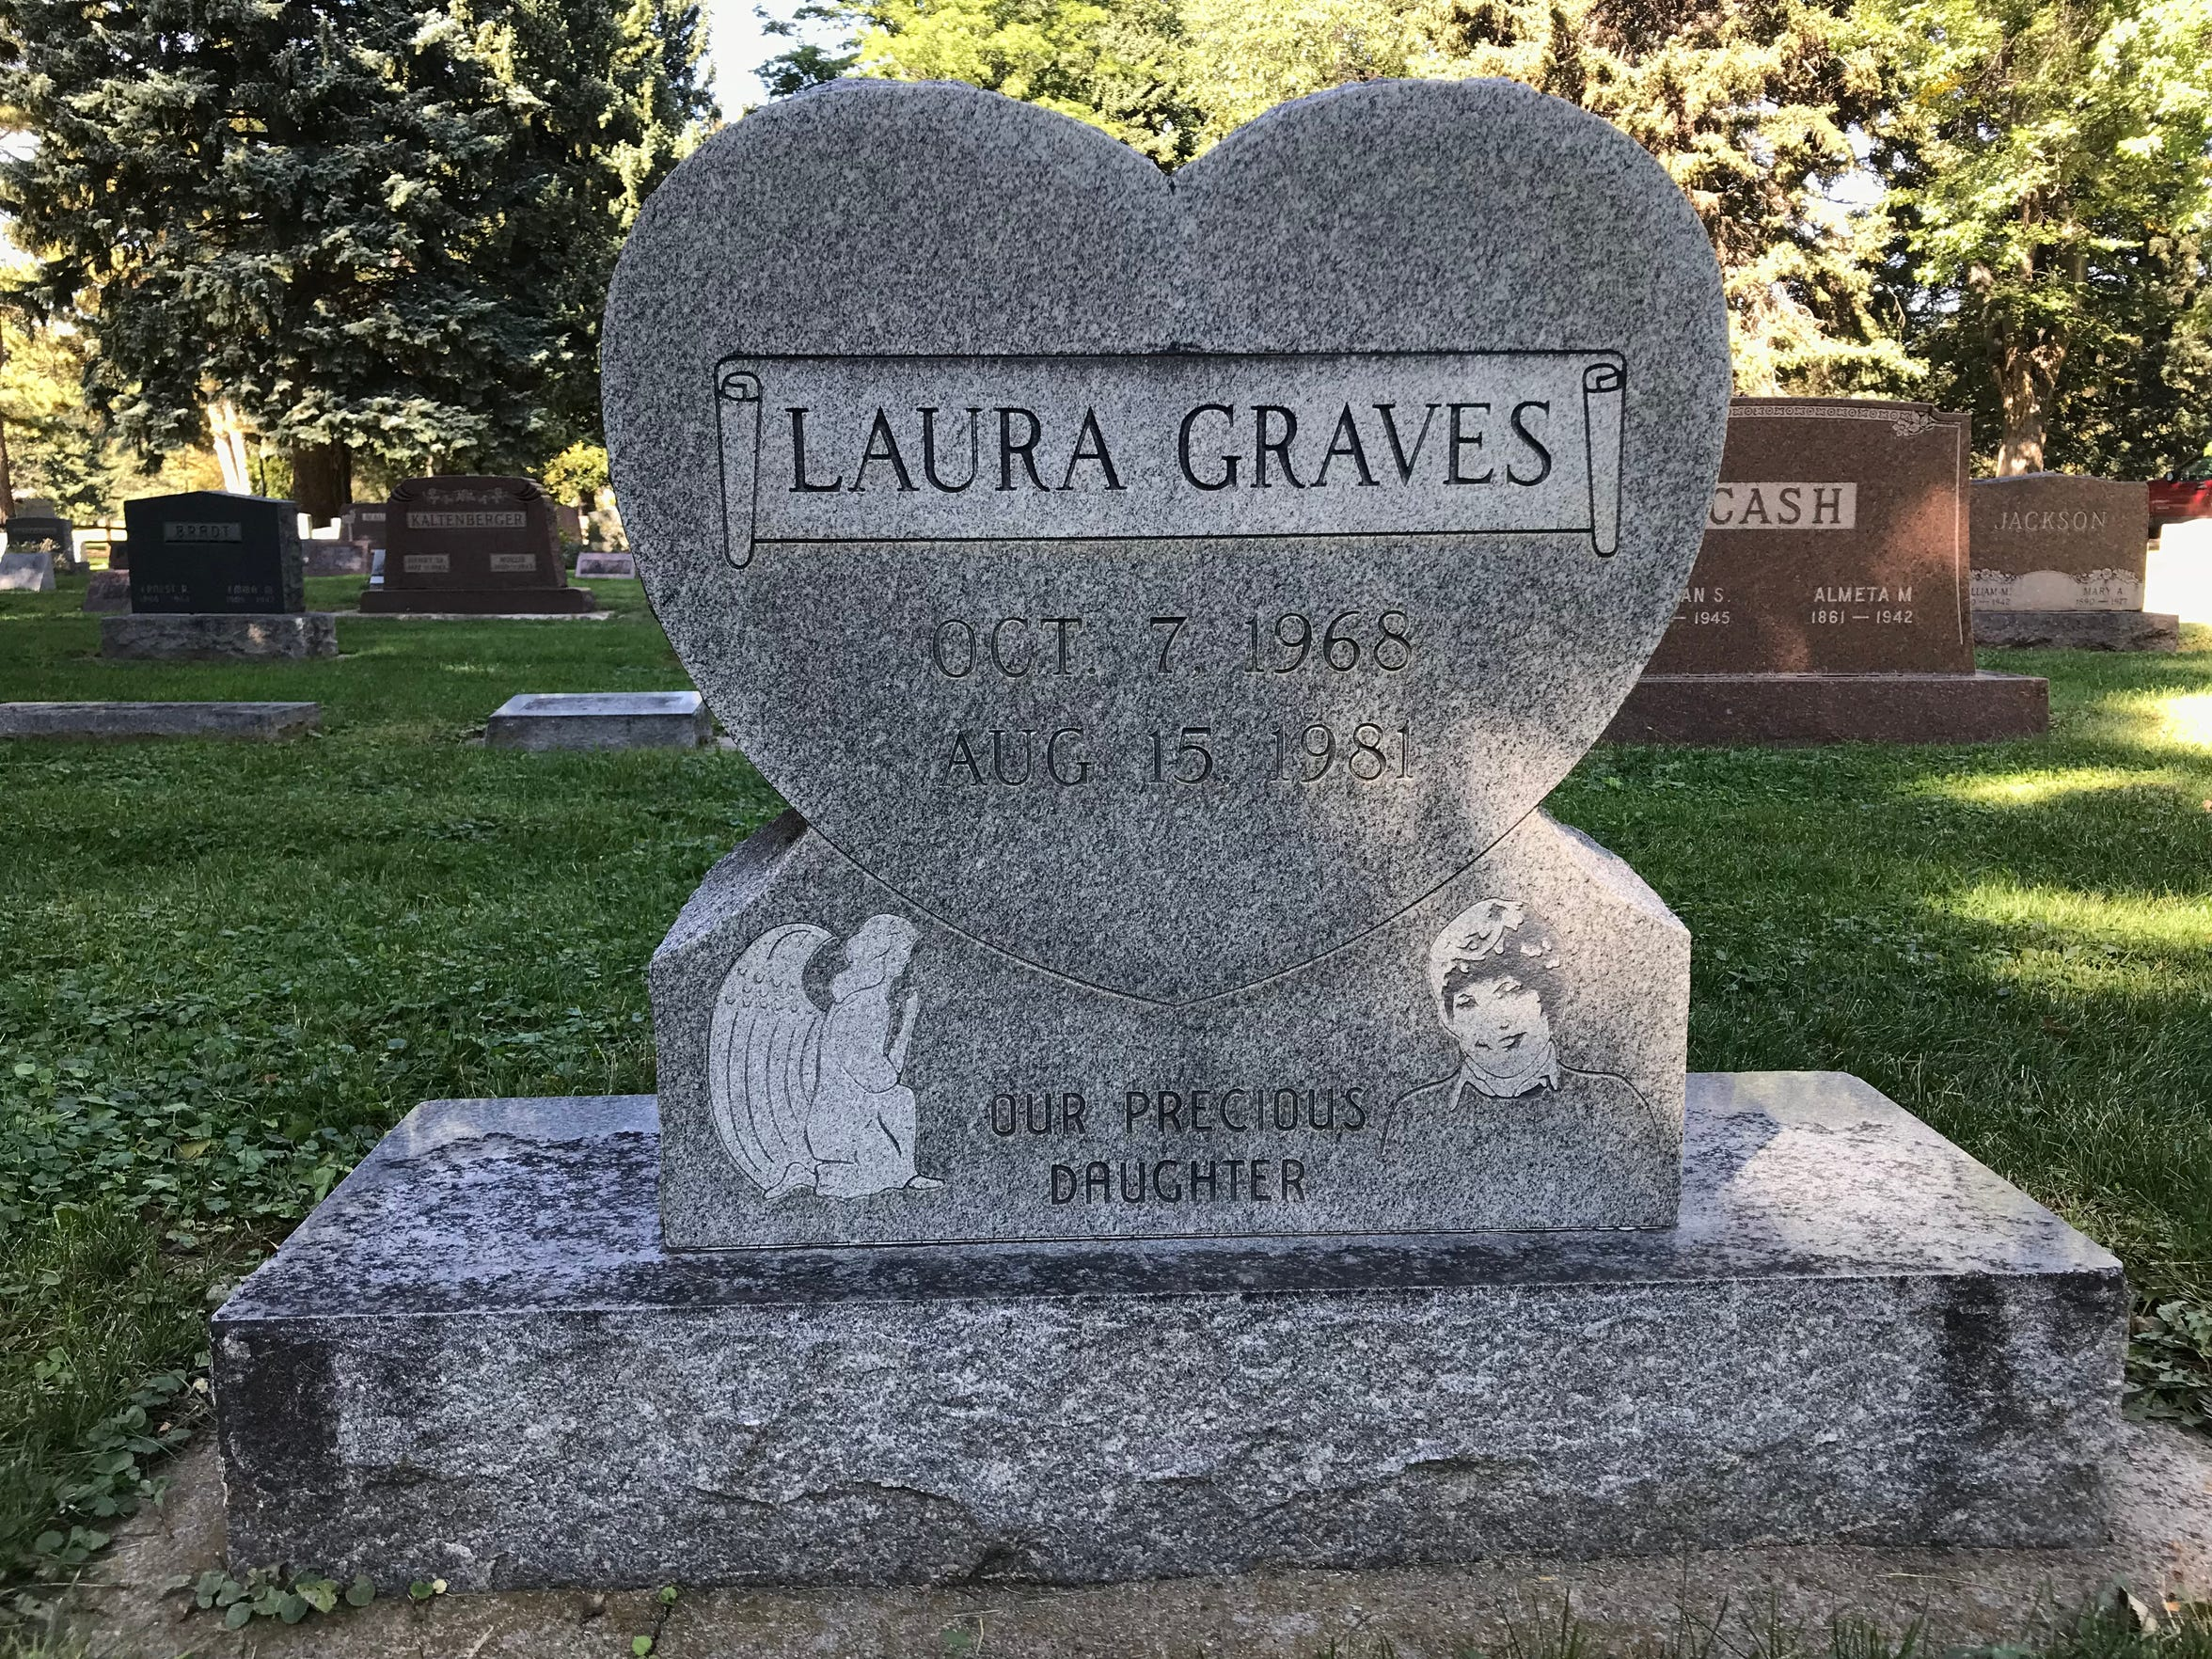 The grave of Laura Graves, the first person in the world to receive a bone marrow transplant from a non-related donor.